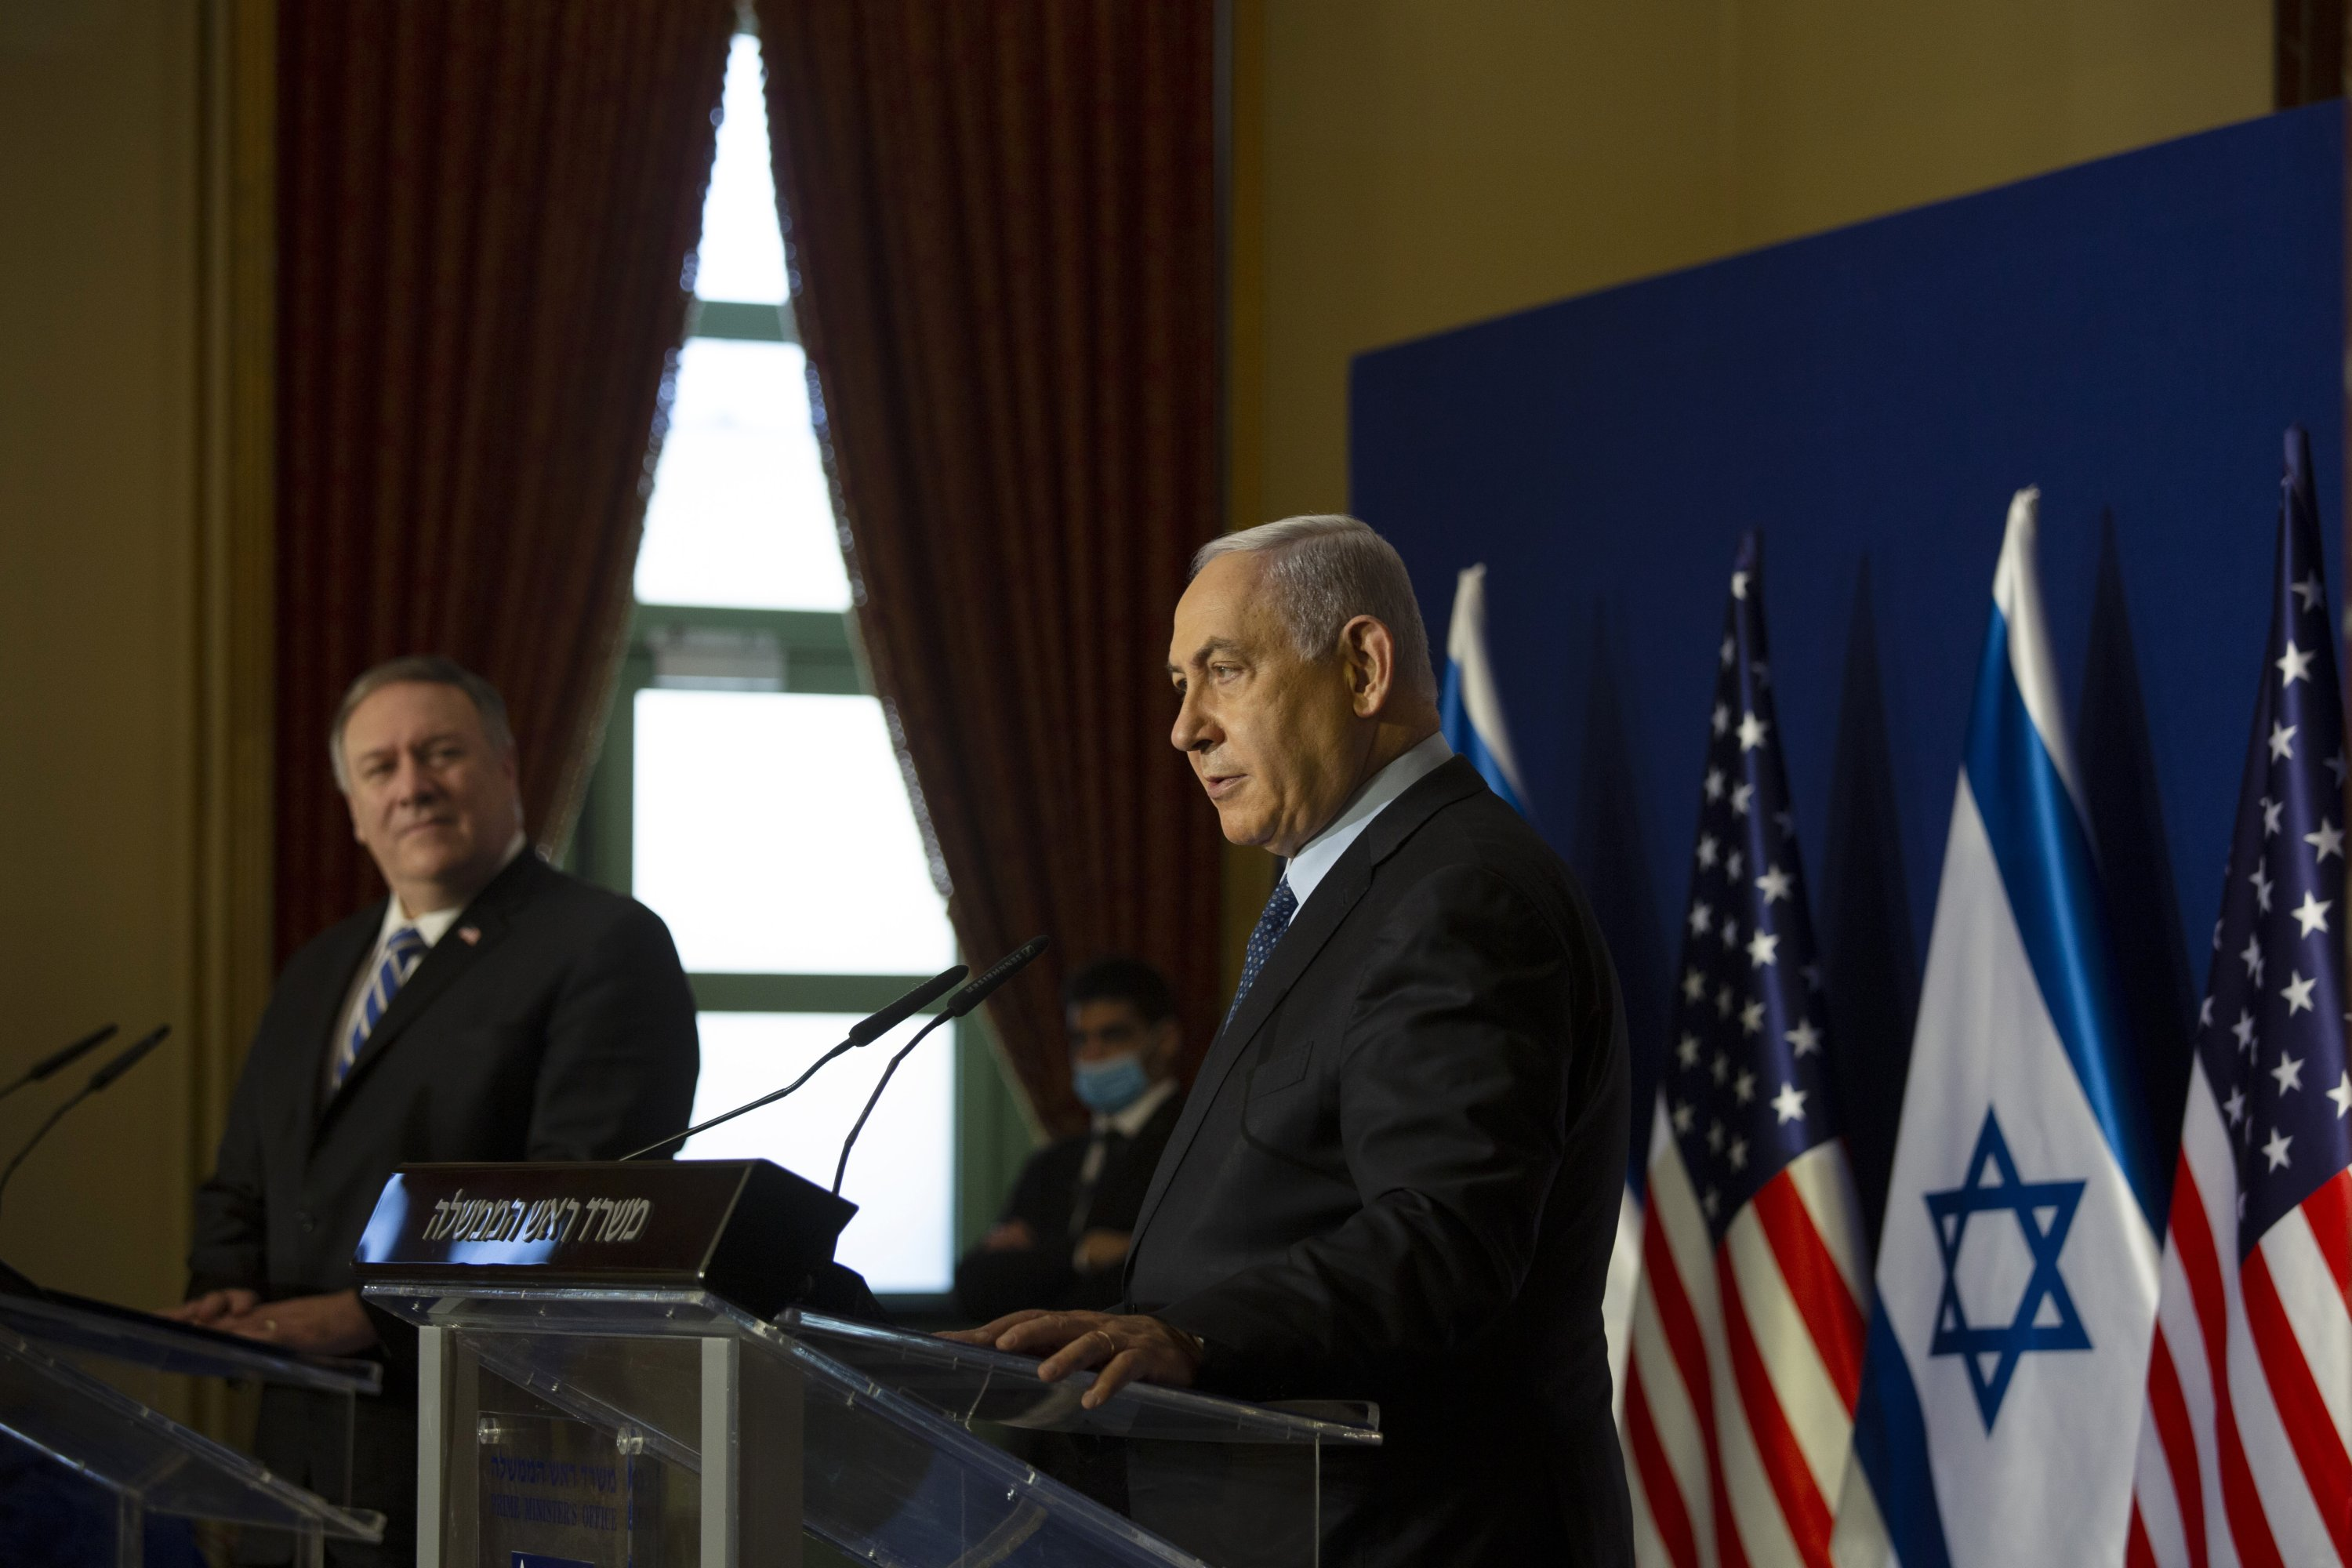 Then U.S. Secretary of State Mike Pompeo (L) listens to Israeli Prime Minister Benjamin Netanyahu speaking during their joint statement after meeting in Jerusalem, Nov. 19, 2020. (AP Photo)